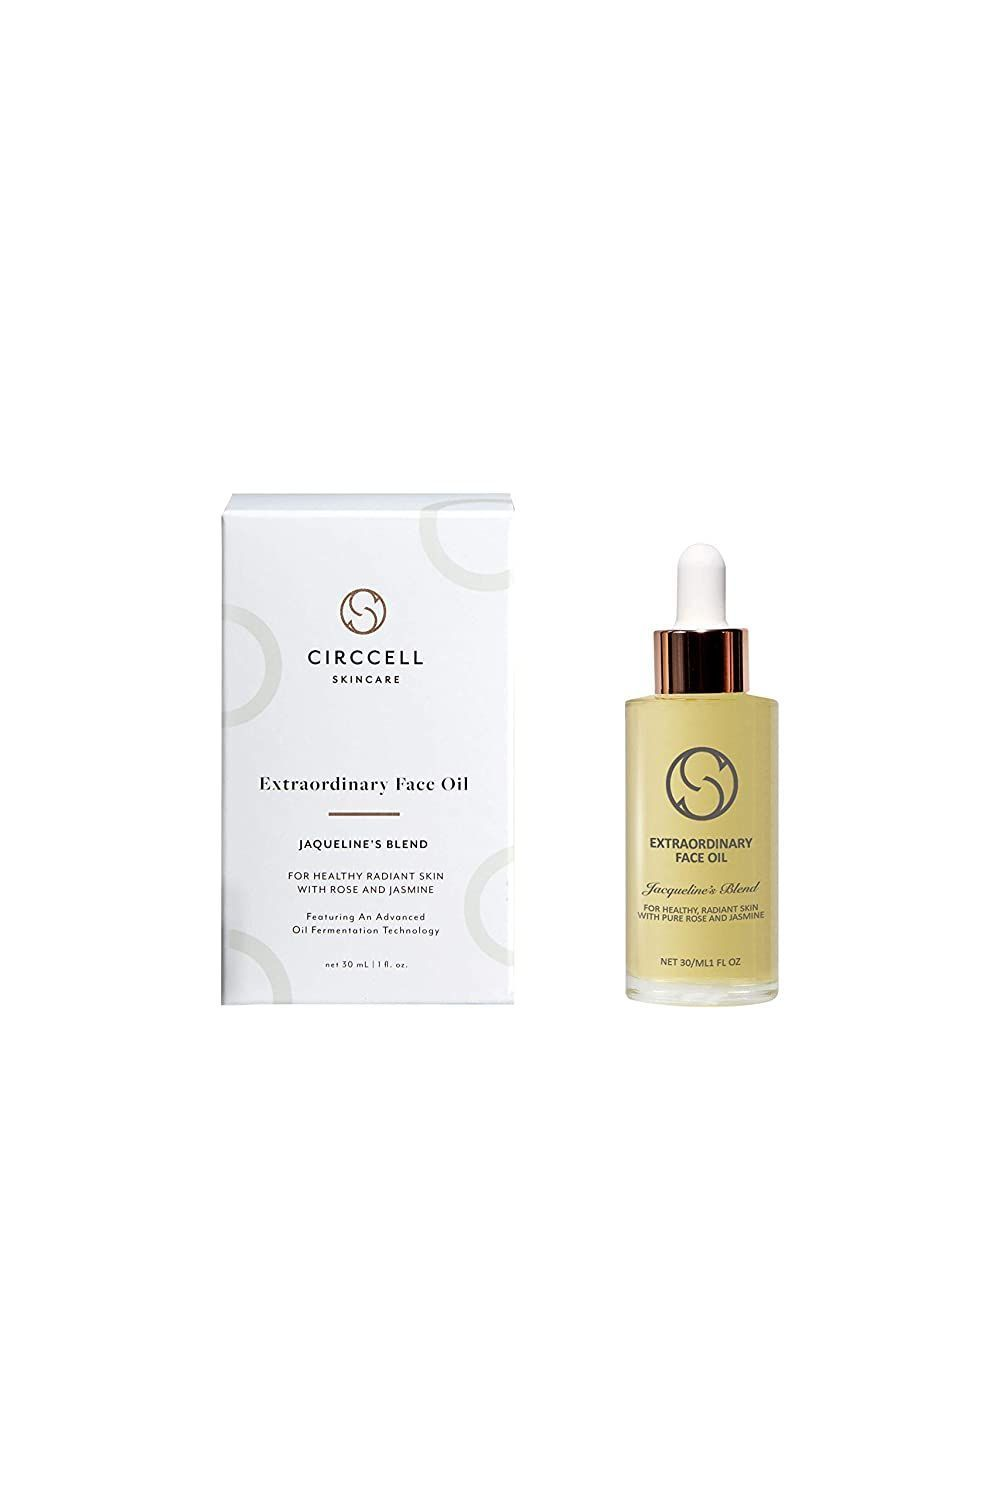 JACQUELINE'S BLEND – EXTRAORDINARY FACE OIL For ANTI-AGING